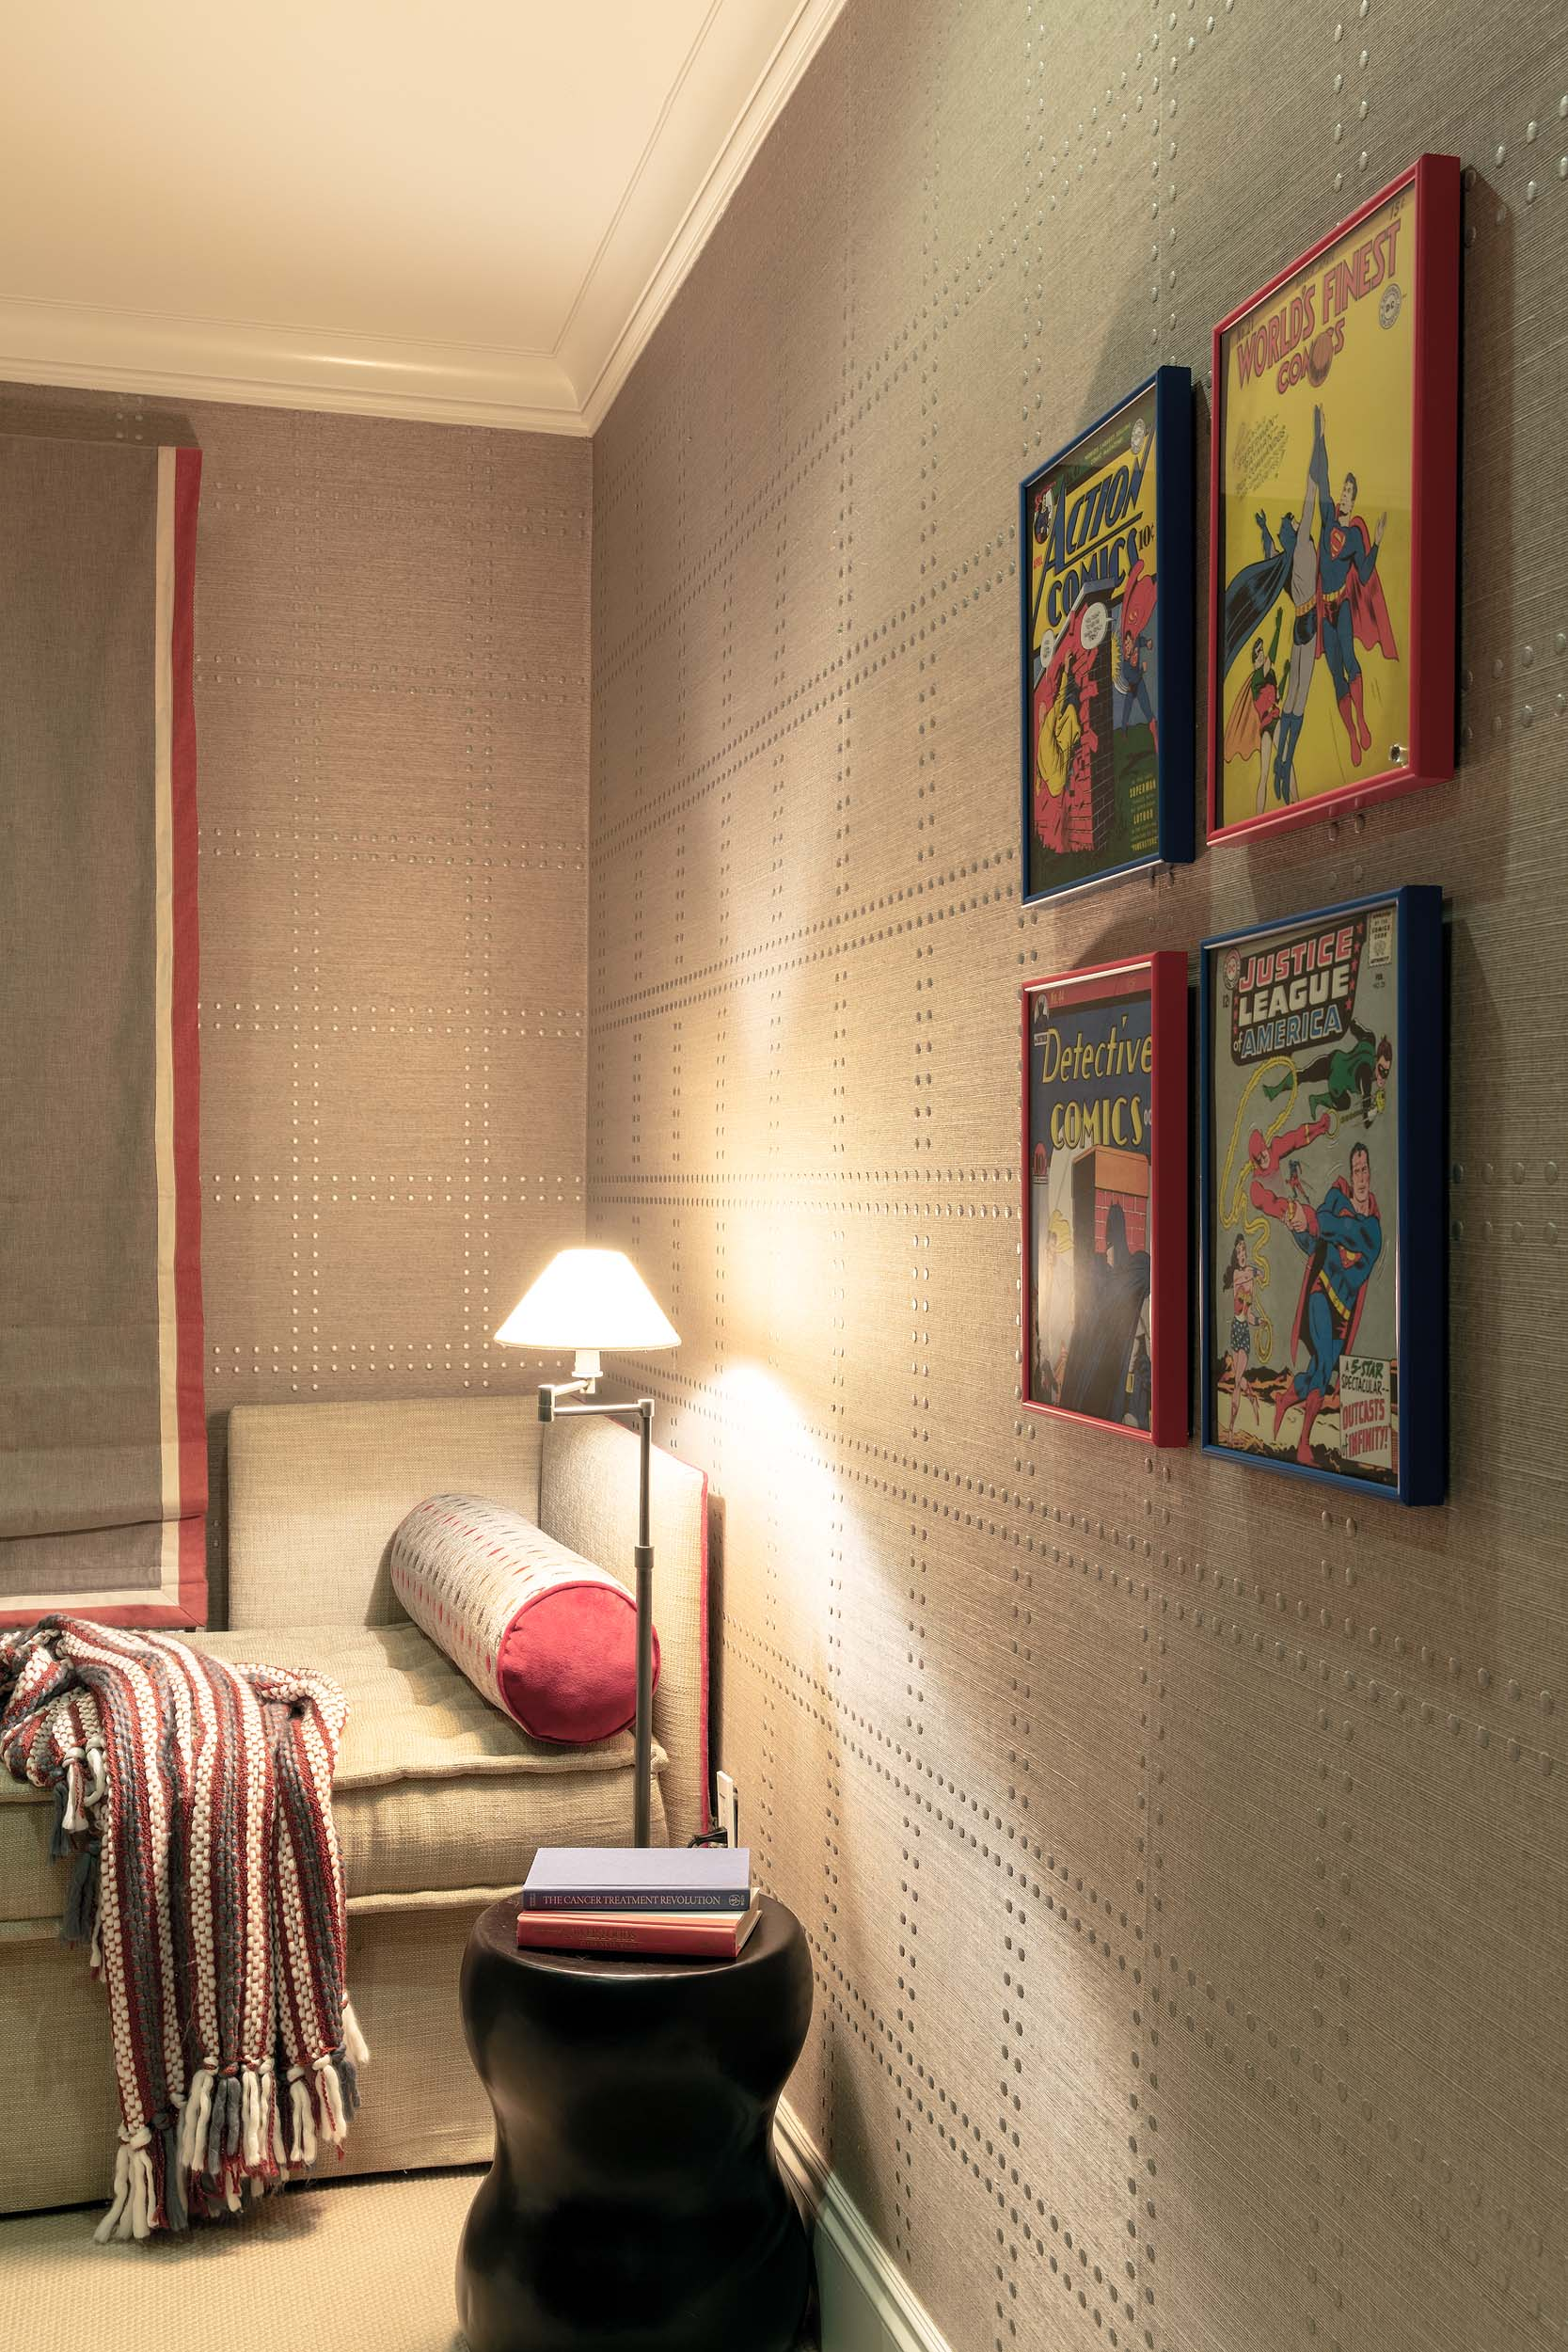 18-Transitional-Contemporary-Top-Guest-Bedroom-Office-Day-Bed-Comic-Book-Art-Phillip-Jeffries-Wallpaper-Ideas-Decorator-Best-Interior-Designers-Boston-South-End-Back-Bay-Cambridge-Dane-Austin-Design.jpg